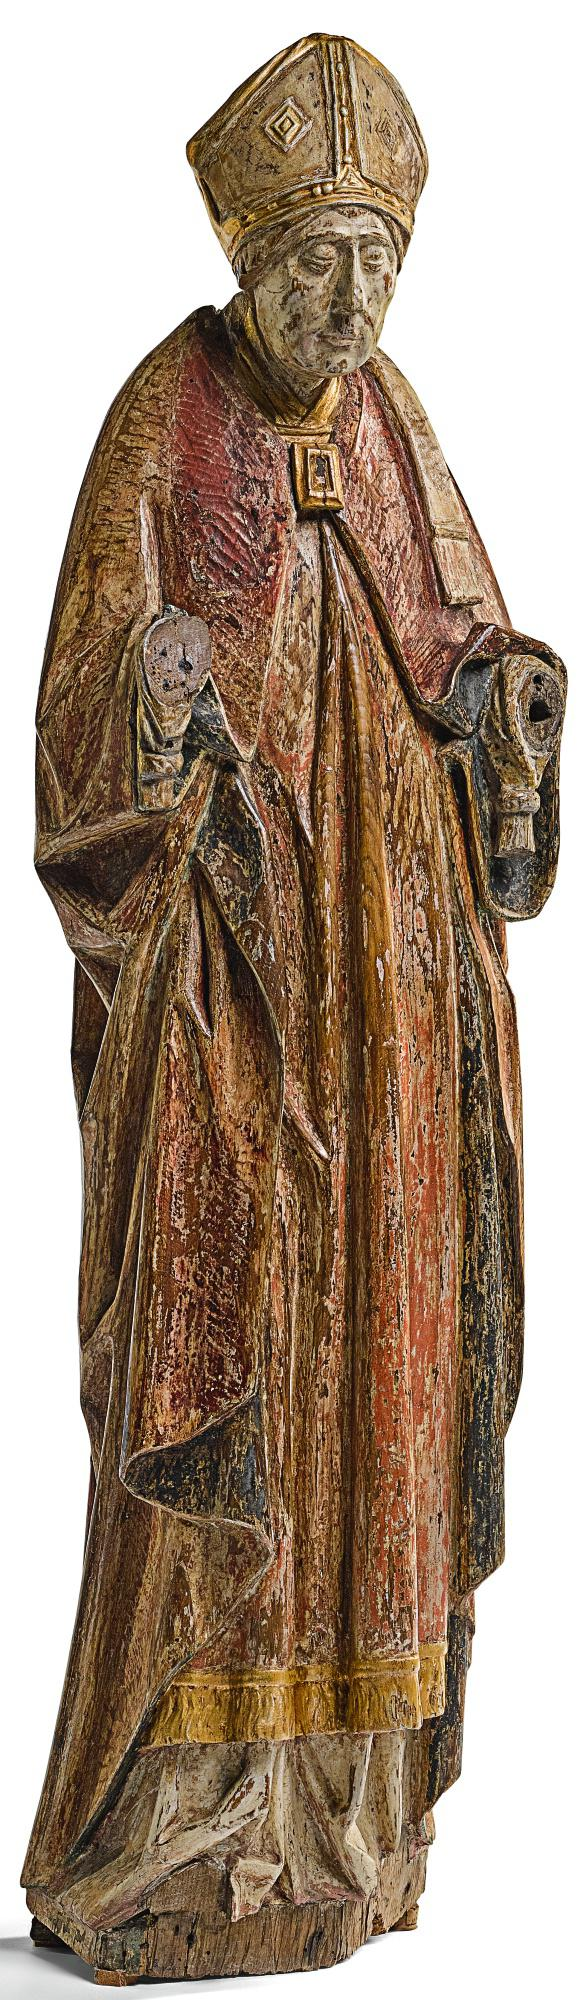 SOUTHERN NETHERLANDISH, ANTWERP, CIRCA 1460-1470 | BISHOP SAINT